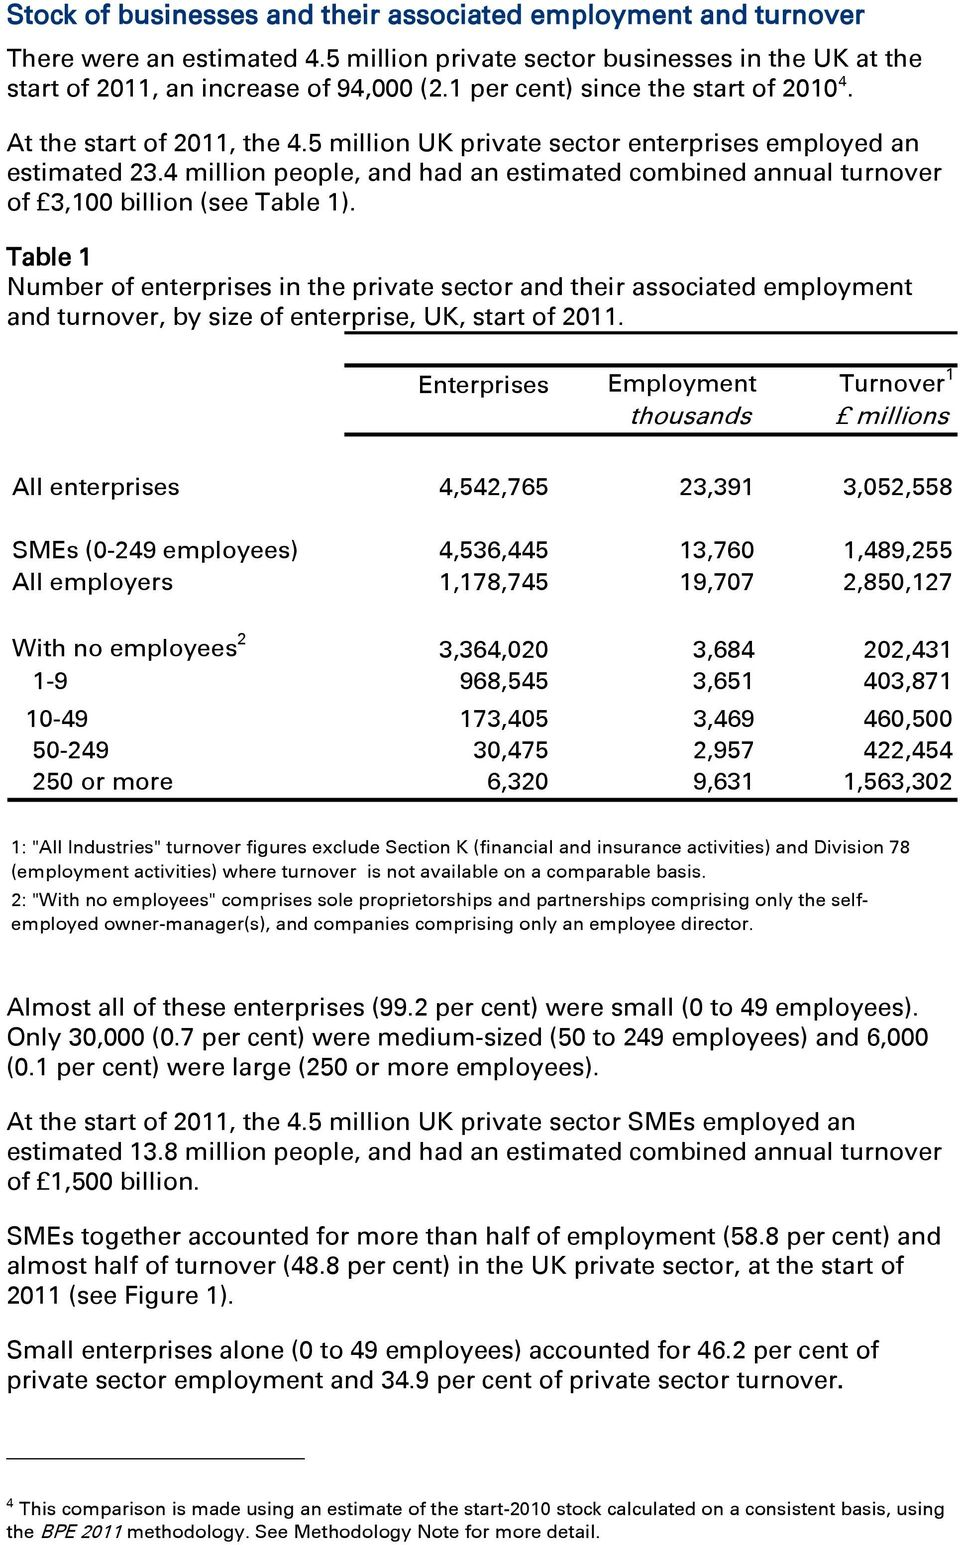 4 million people, and had an estimated combined annual turnover of 3,100 billion (see Table 1).